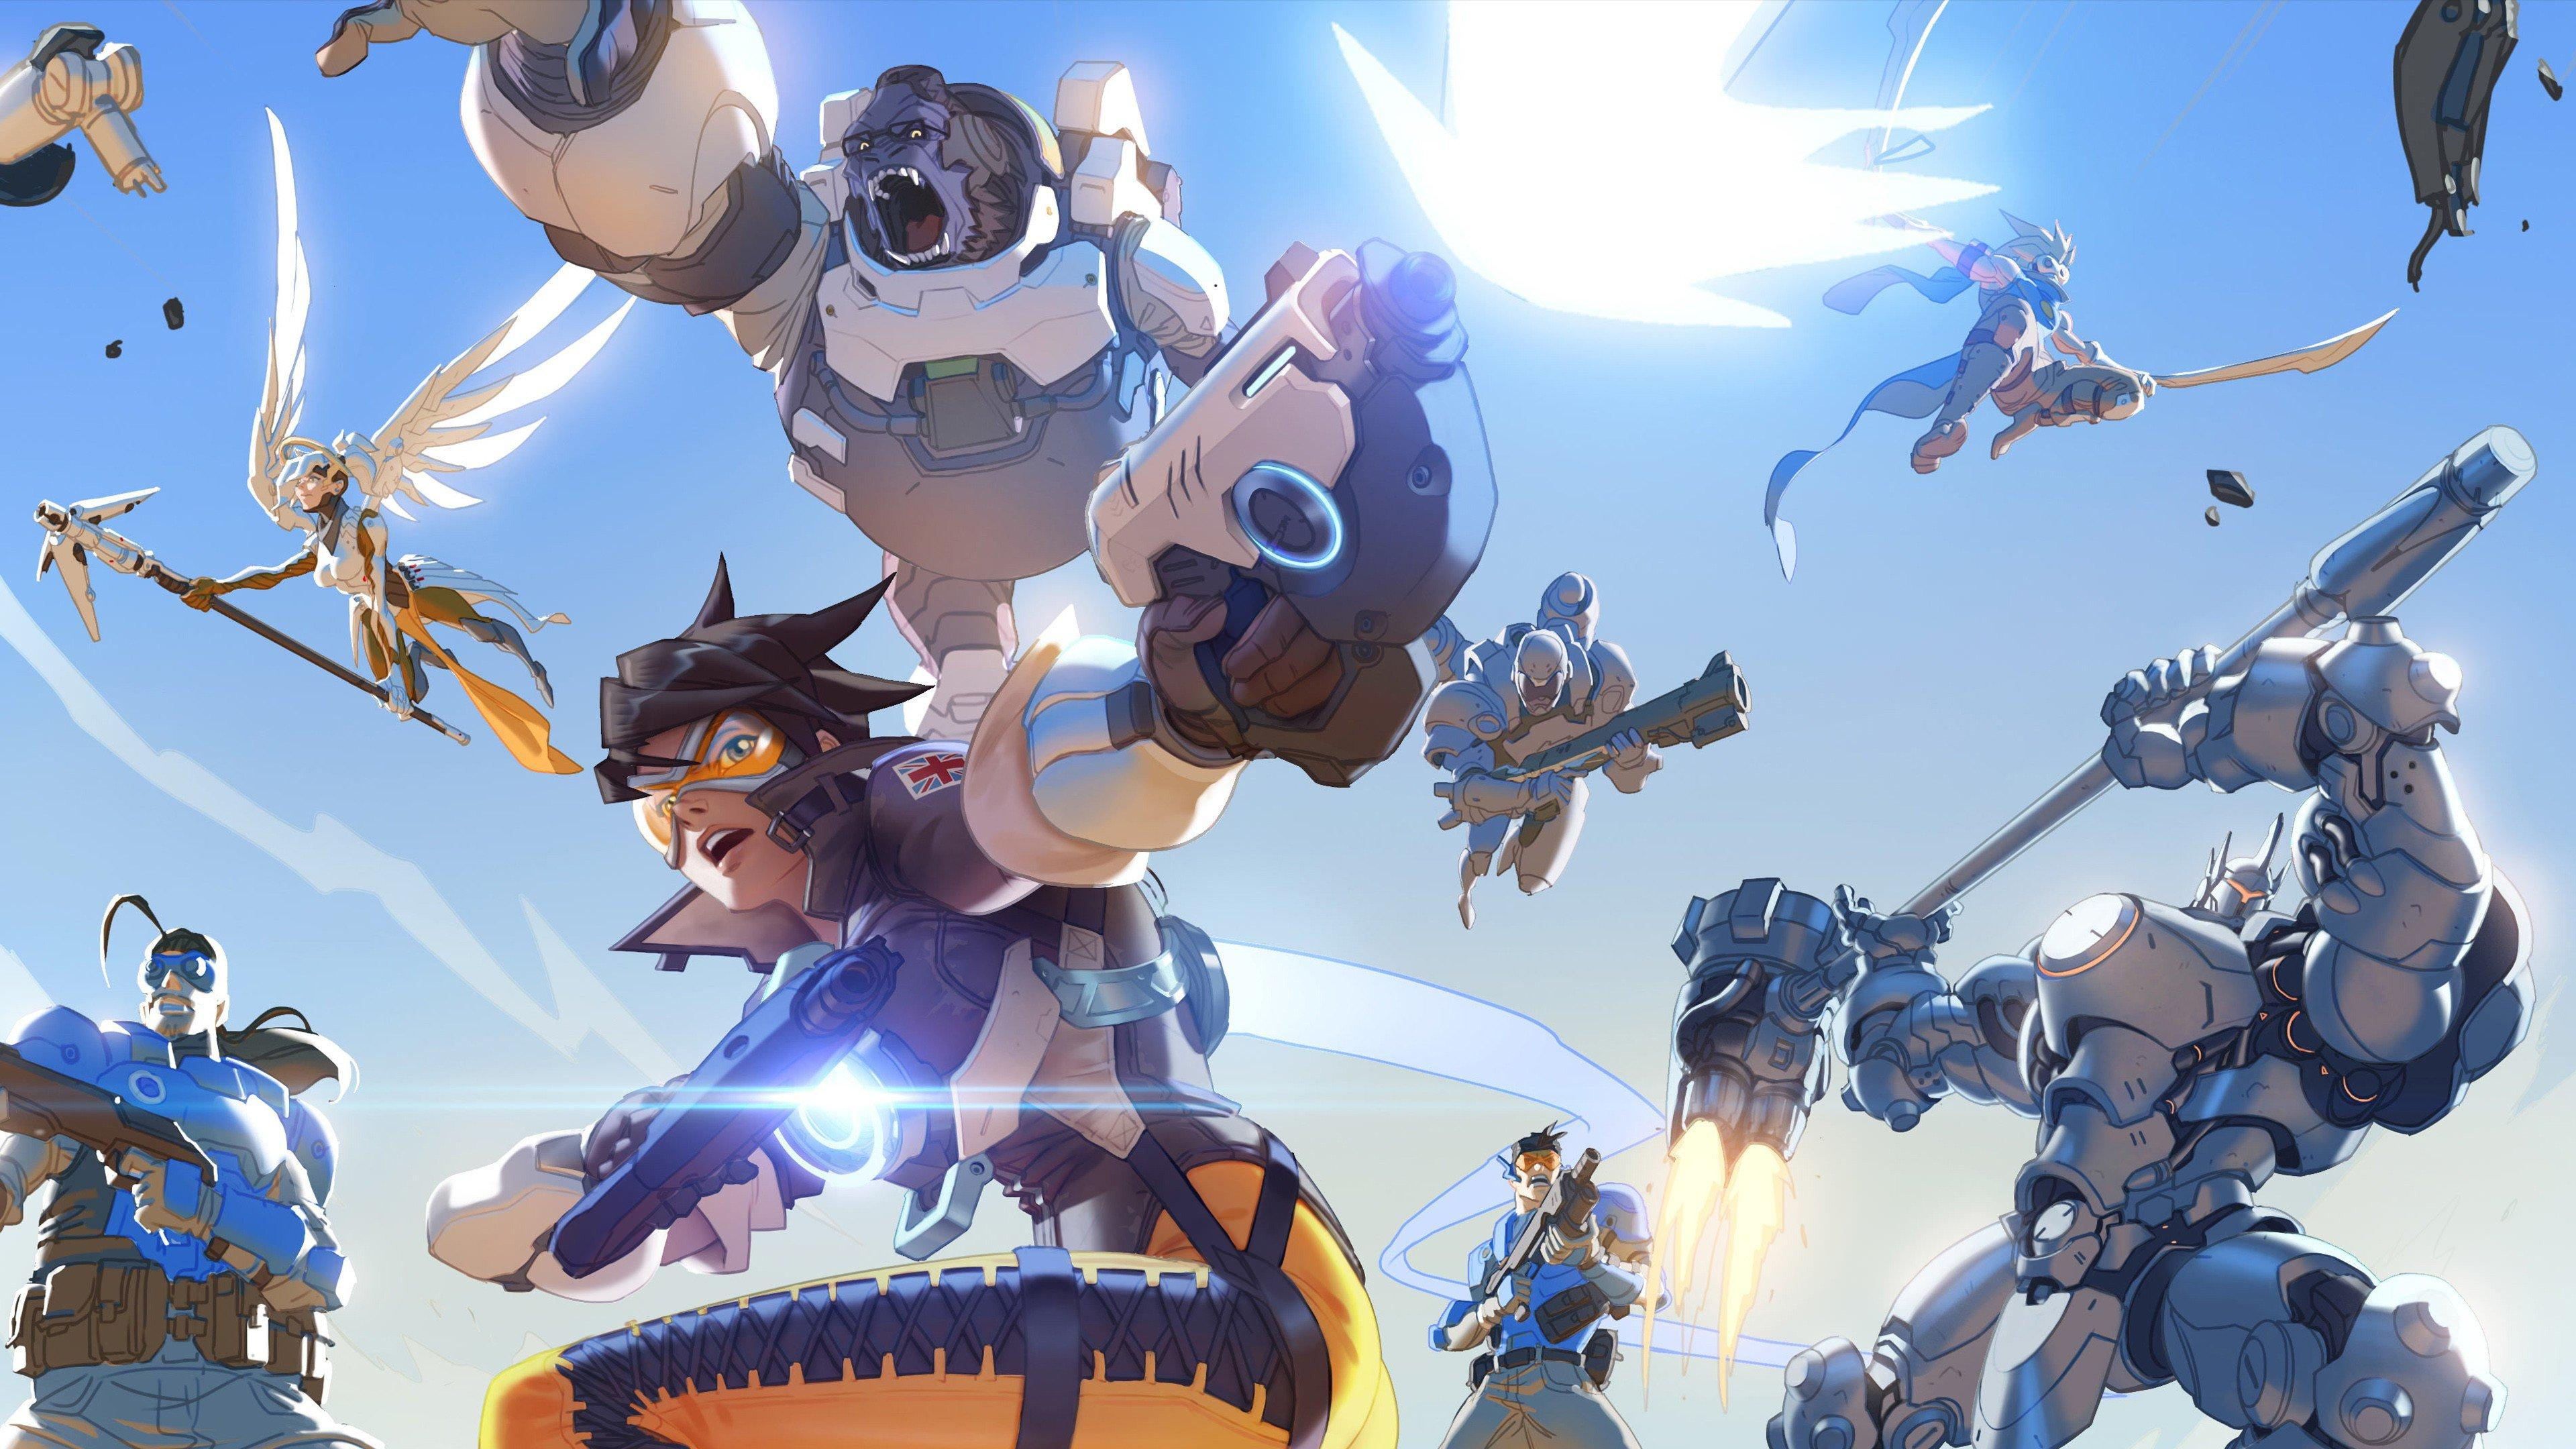 Overwatch is finally bringing the deathmatch mode in the game